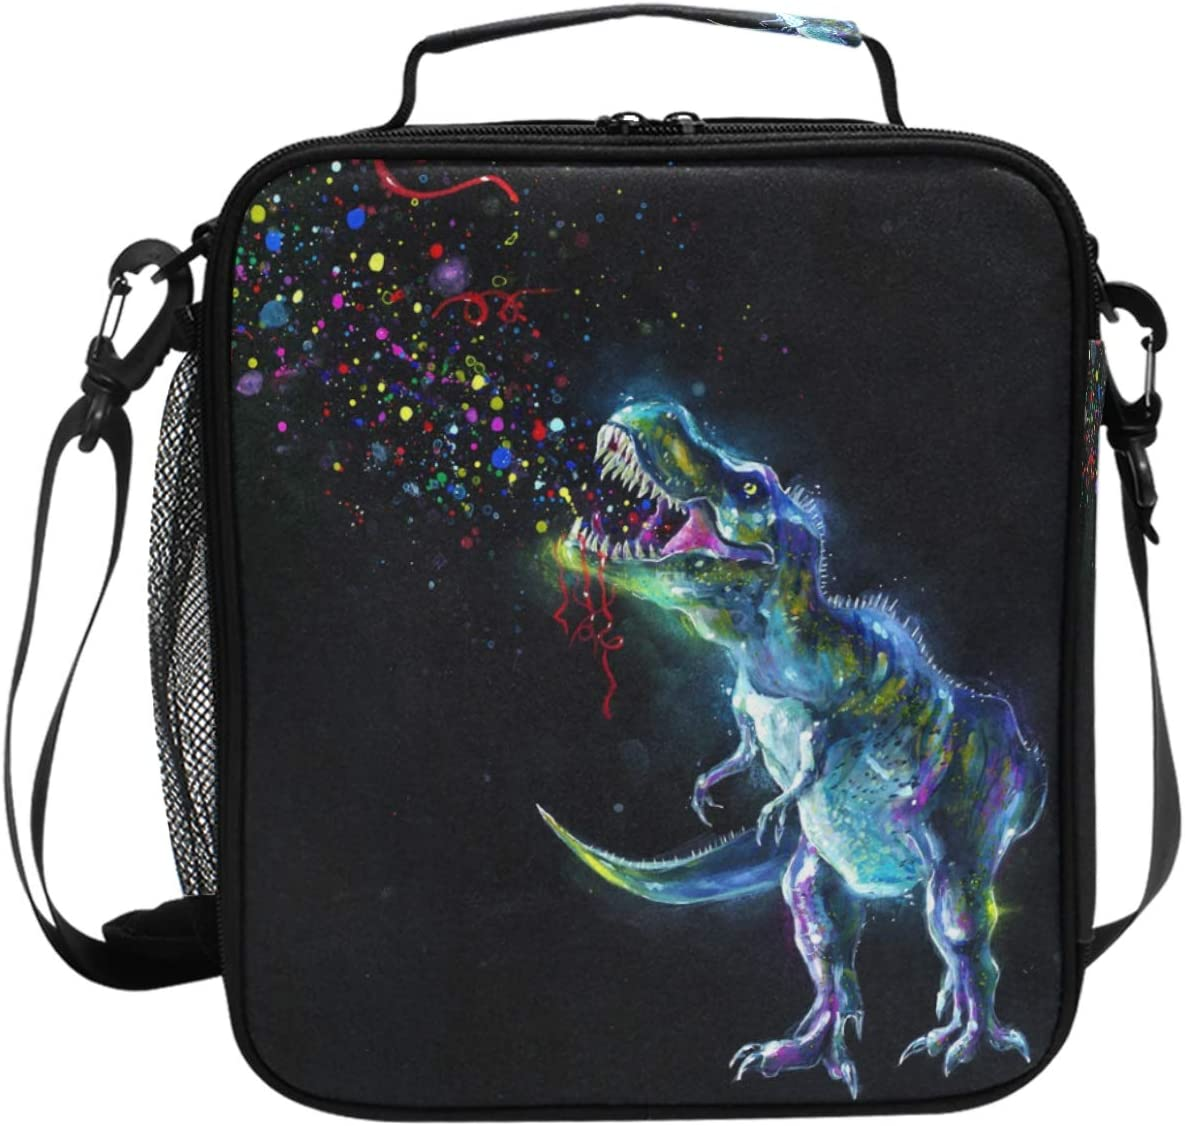 Popular brand Galaxy Dinosaur Lunch Box 3D Bag Insulated Animals Our shop most popular Dino Co